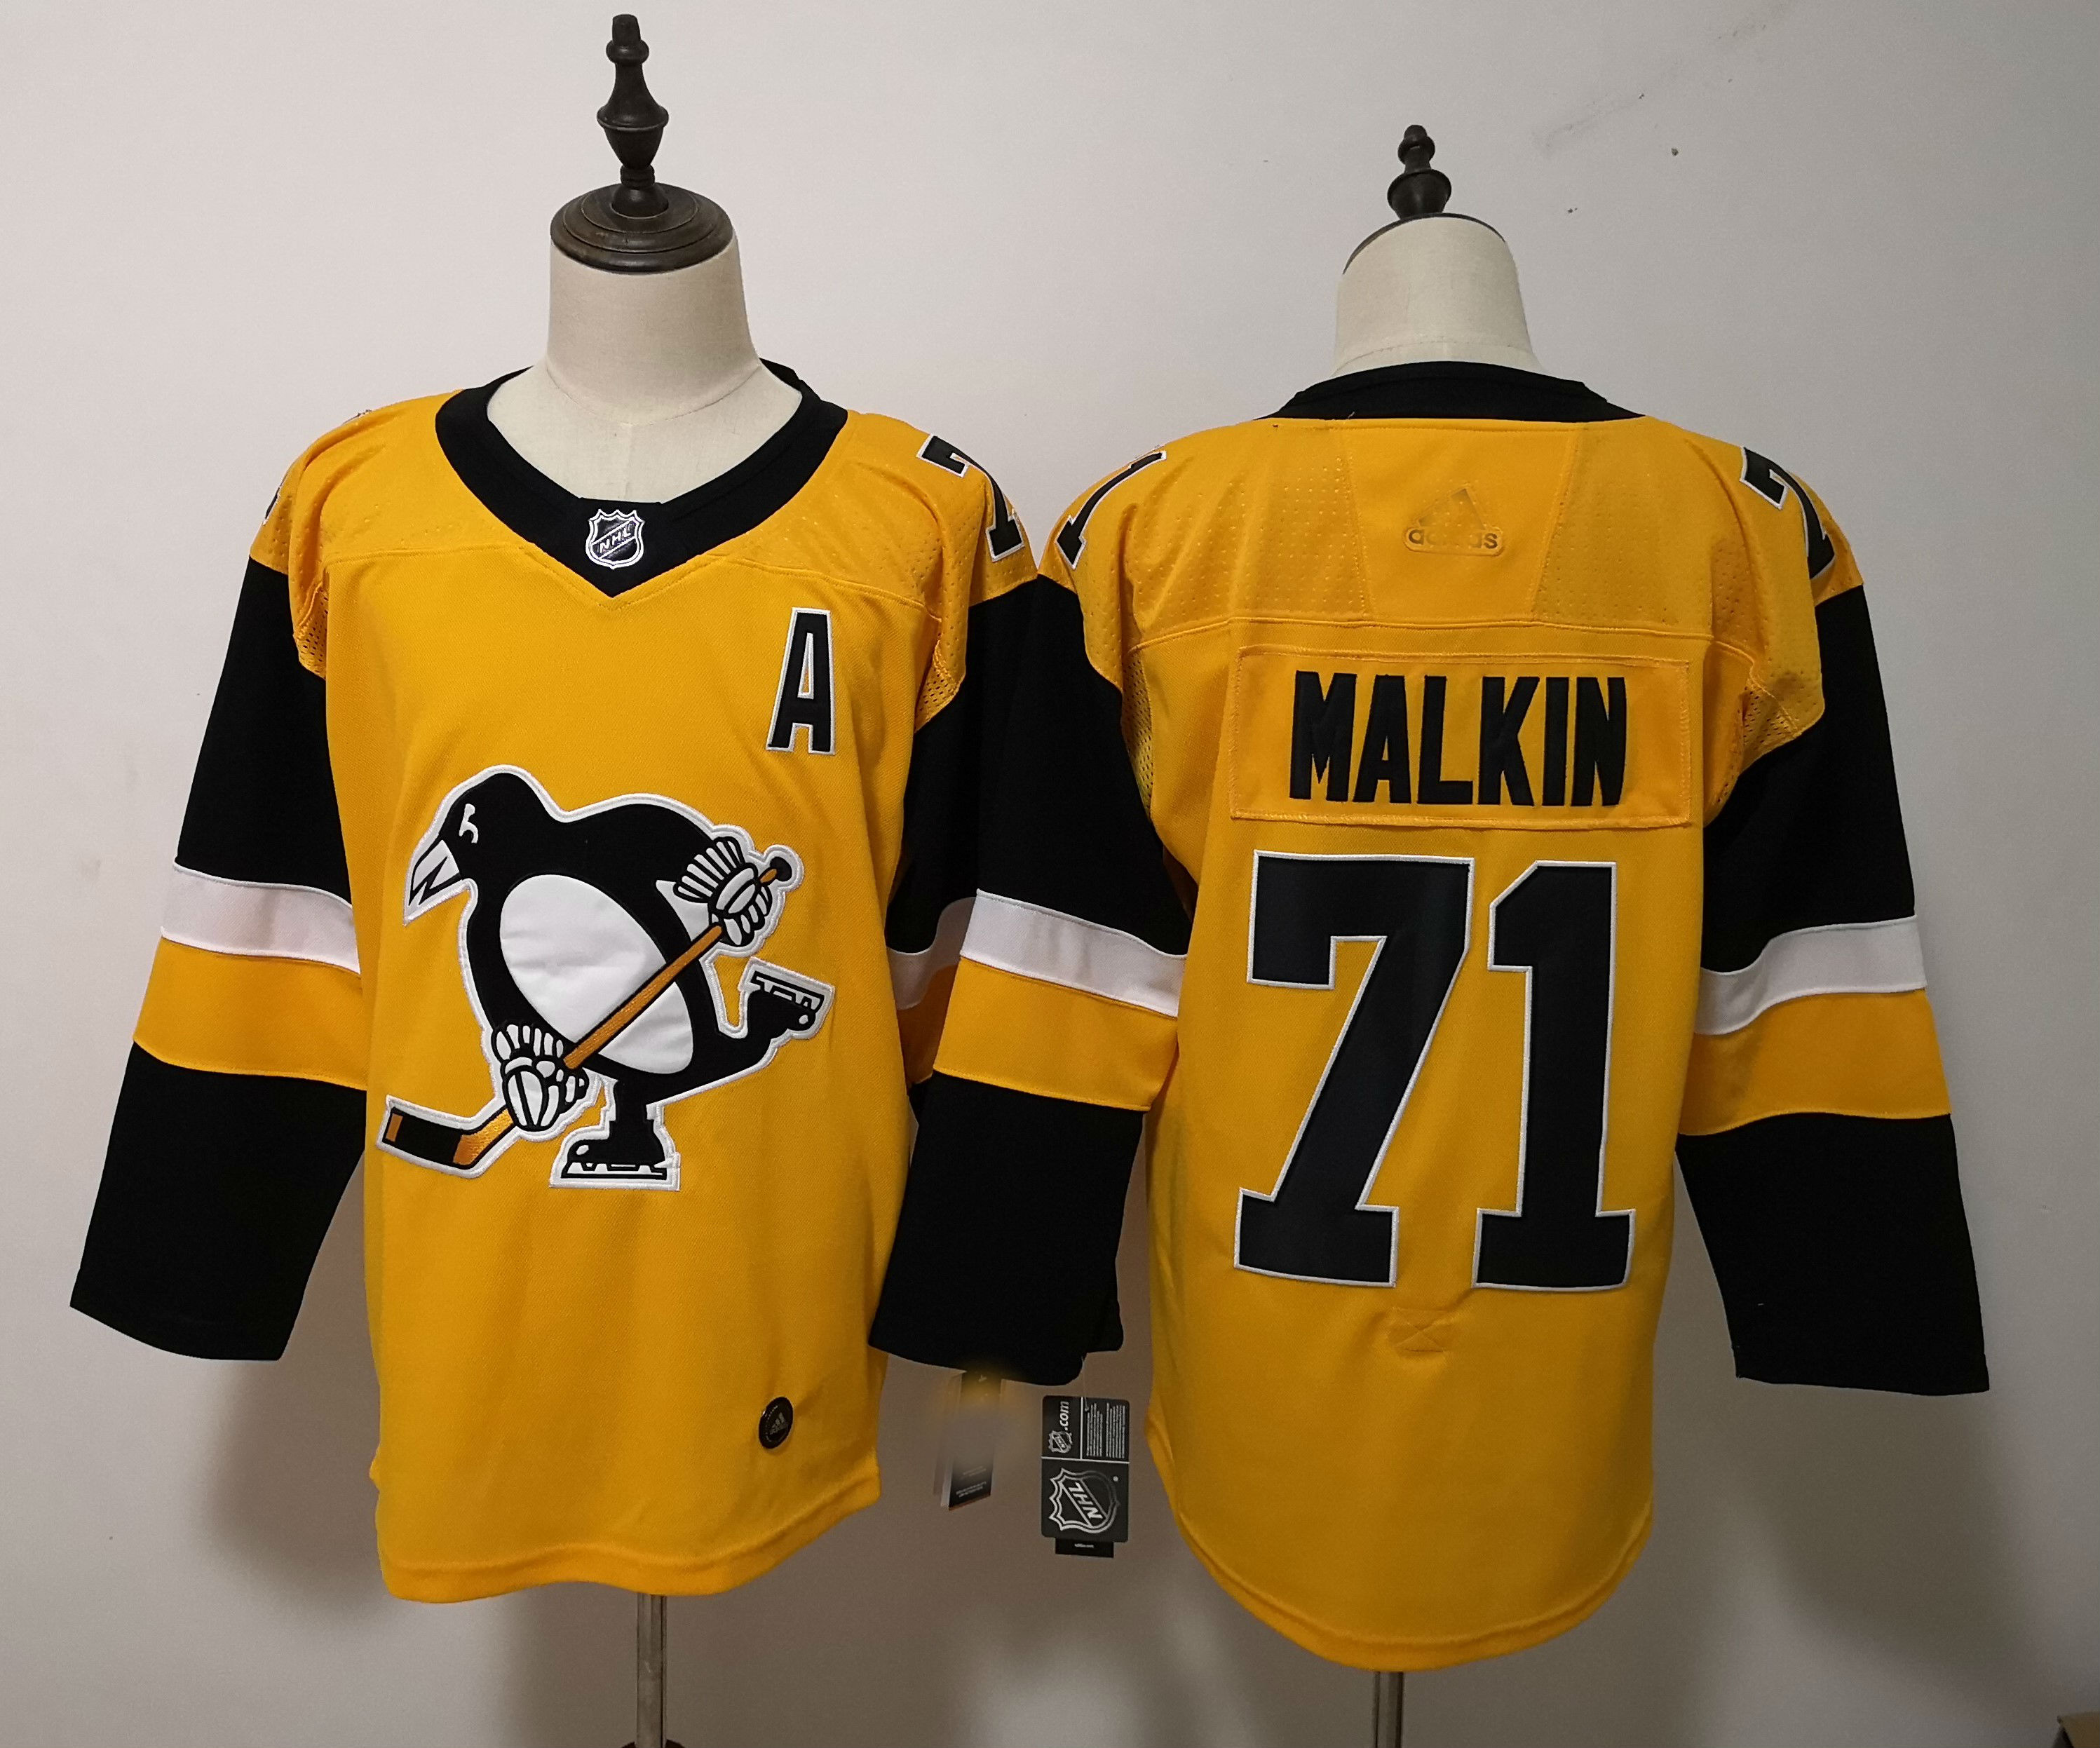 huge discount 9d648 14fad 2019 Kids NHL Pittsburgh Penguins #71 Evgeni Malkin Authentic Player Jersey  from Zamboni